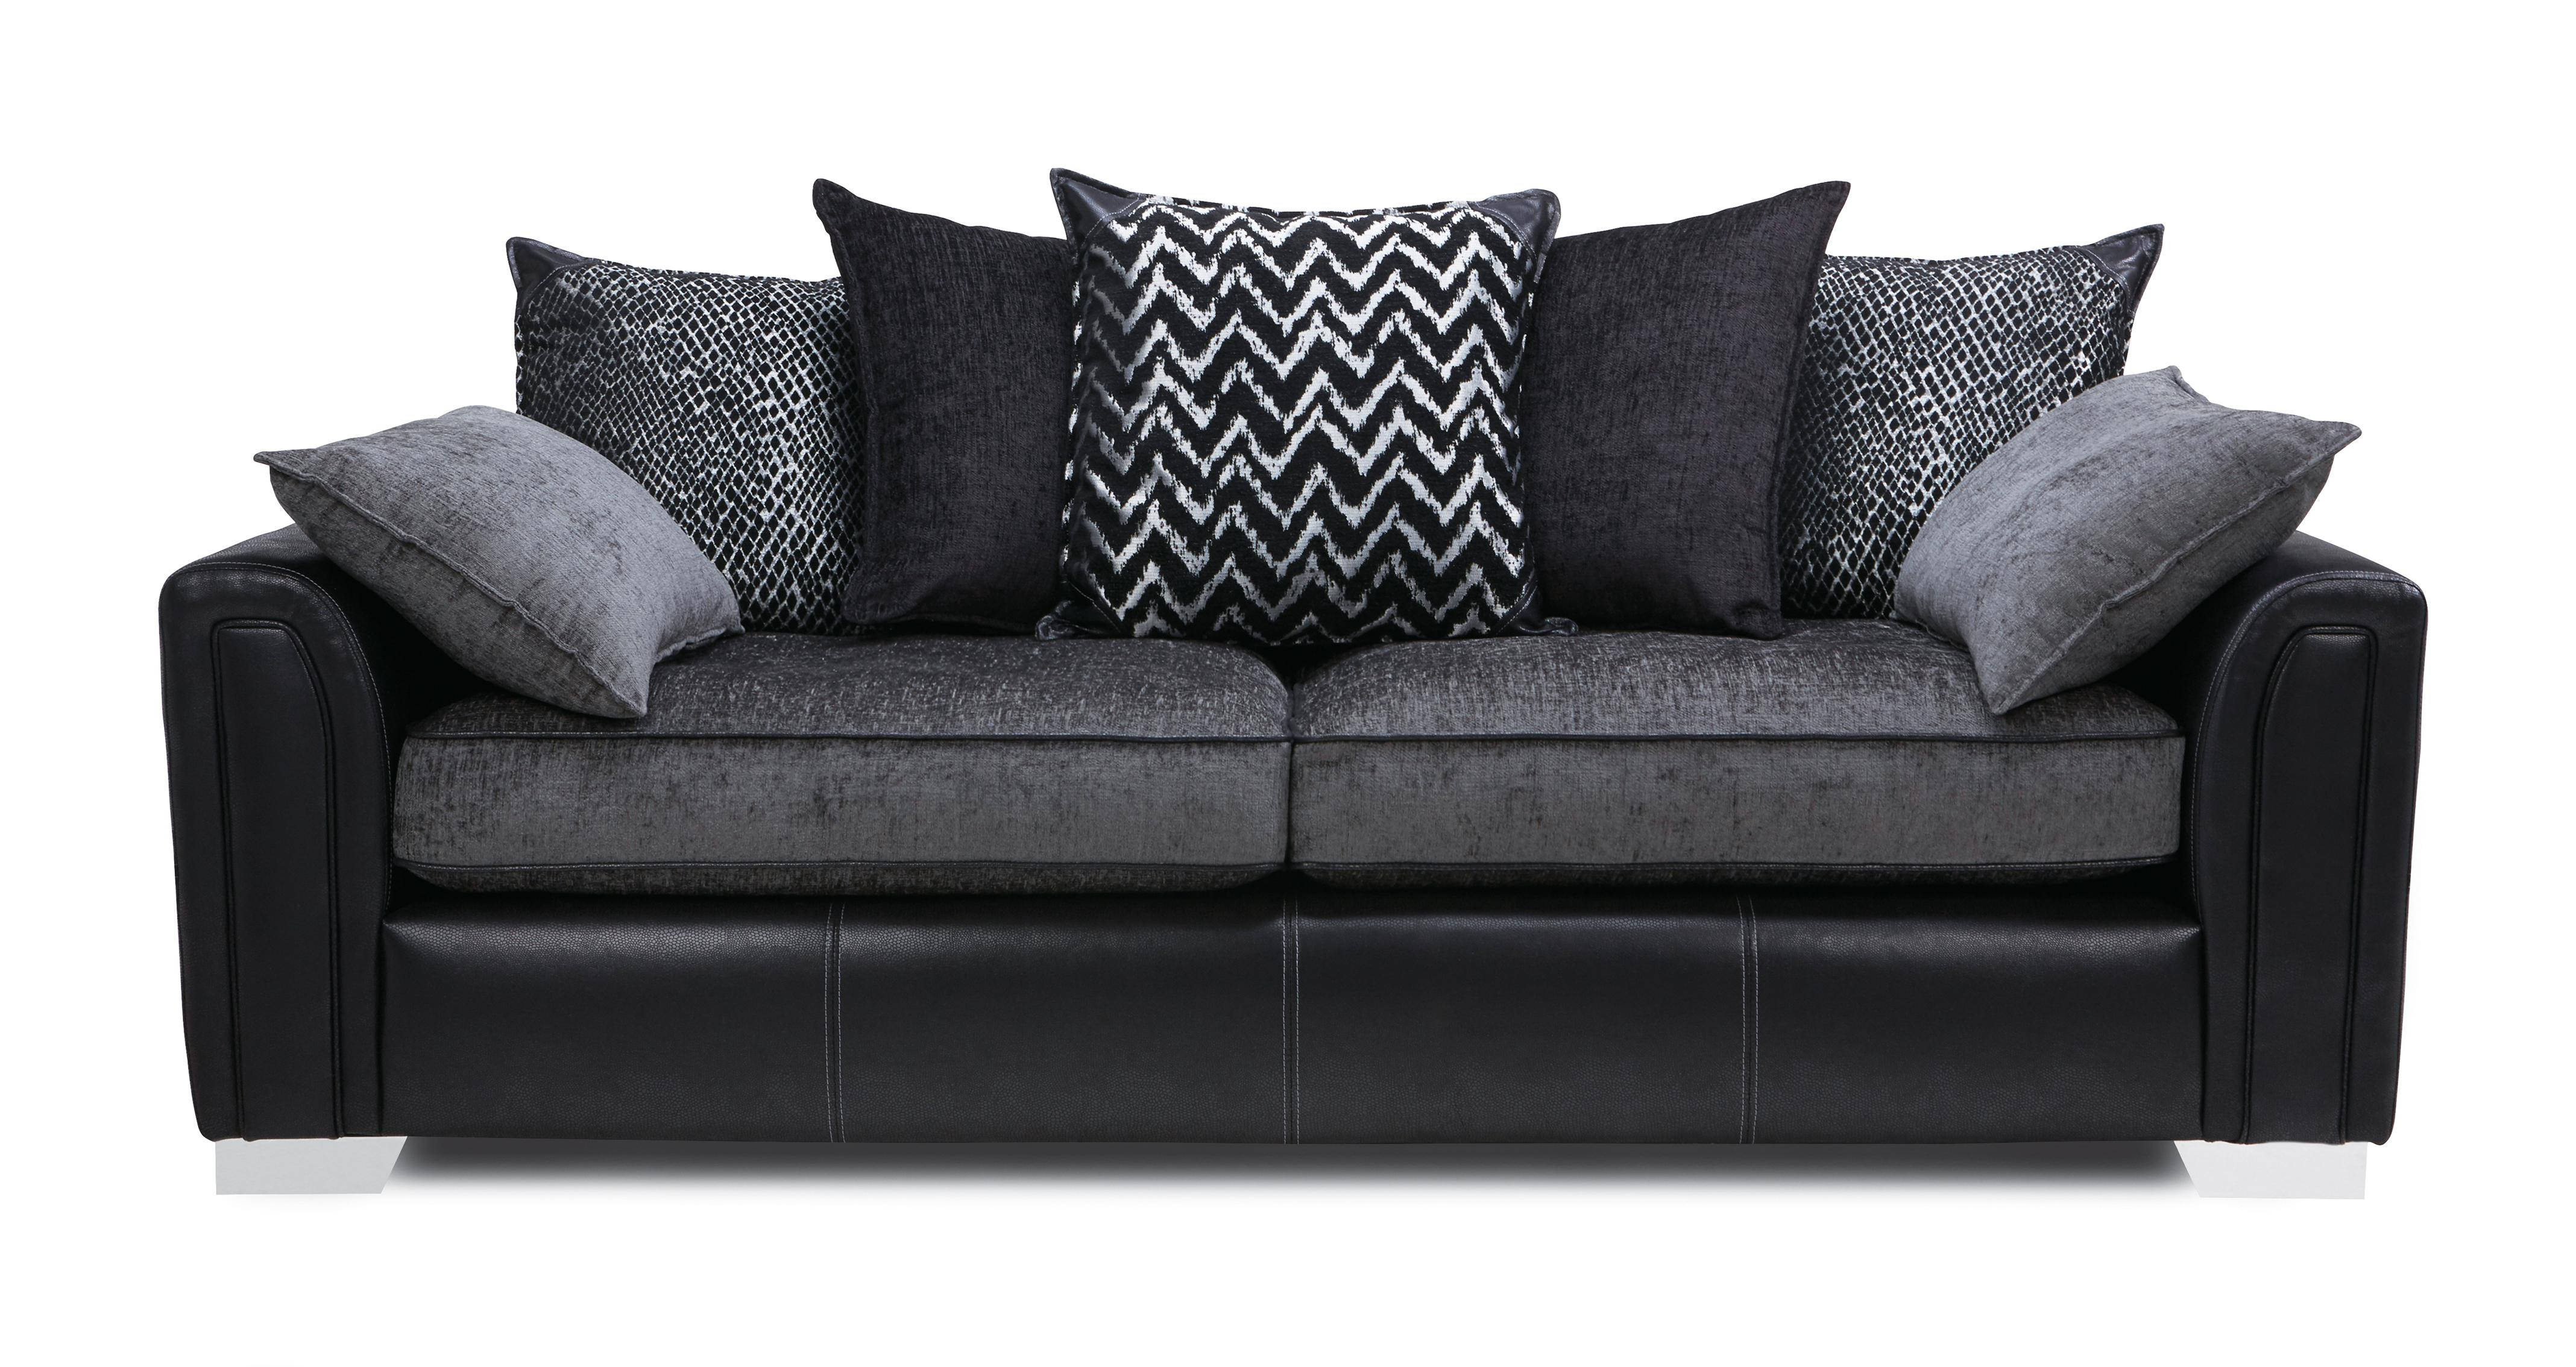 sofa cushion replacements uk 597 casual reclining sectional with right side chaise by franklin dfs replacement brokeasshome